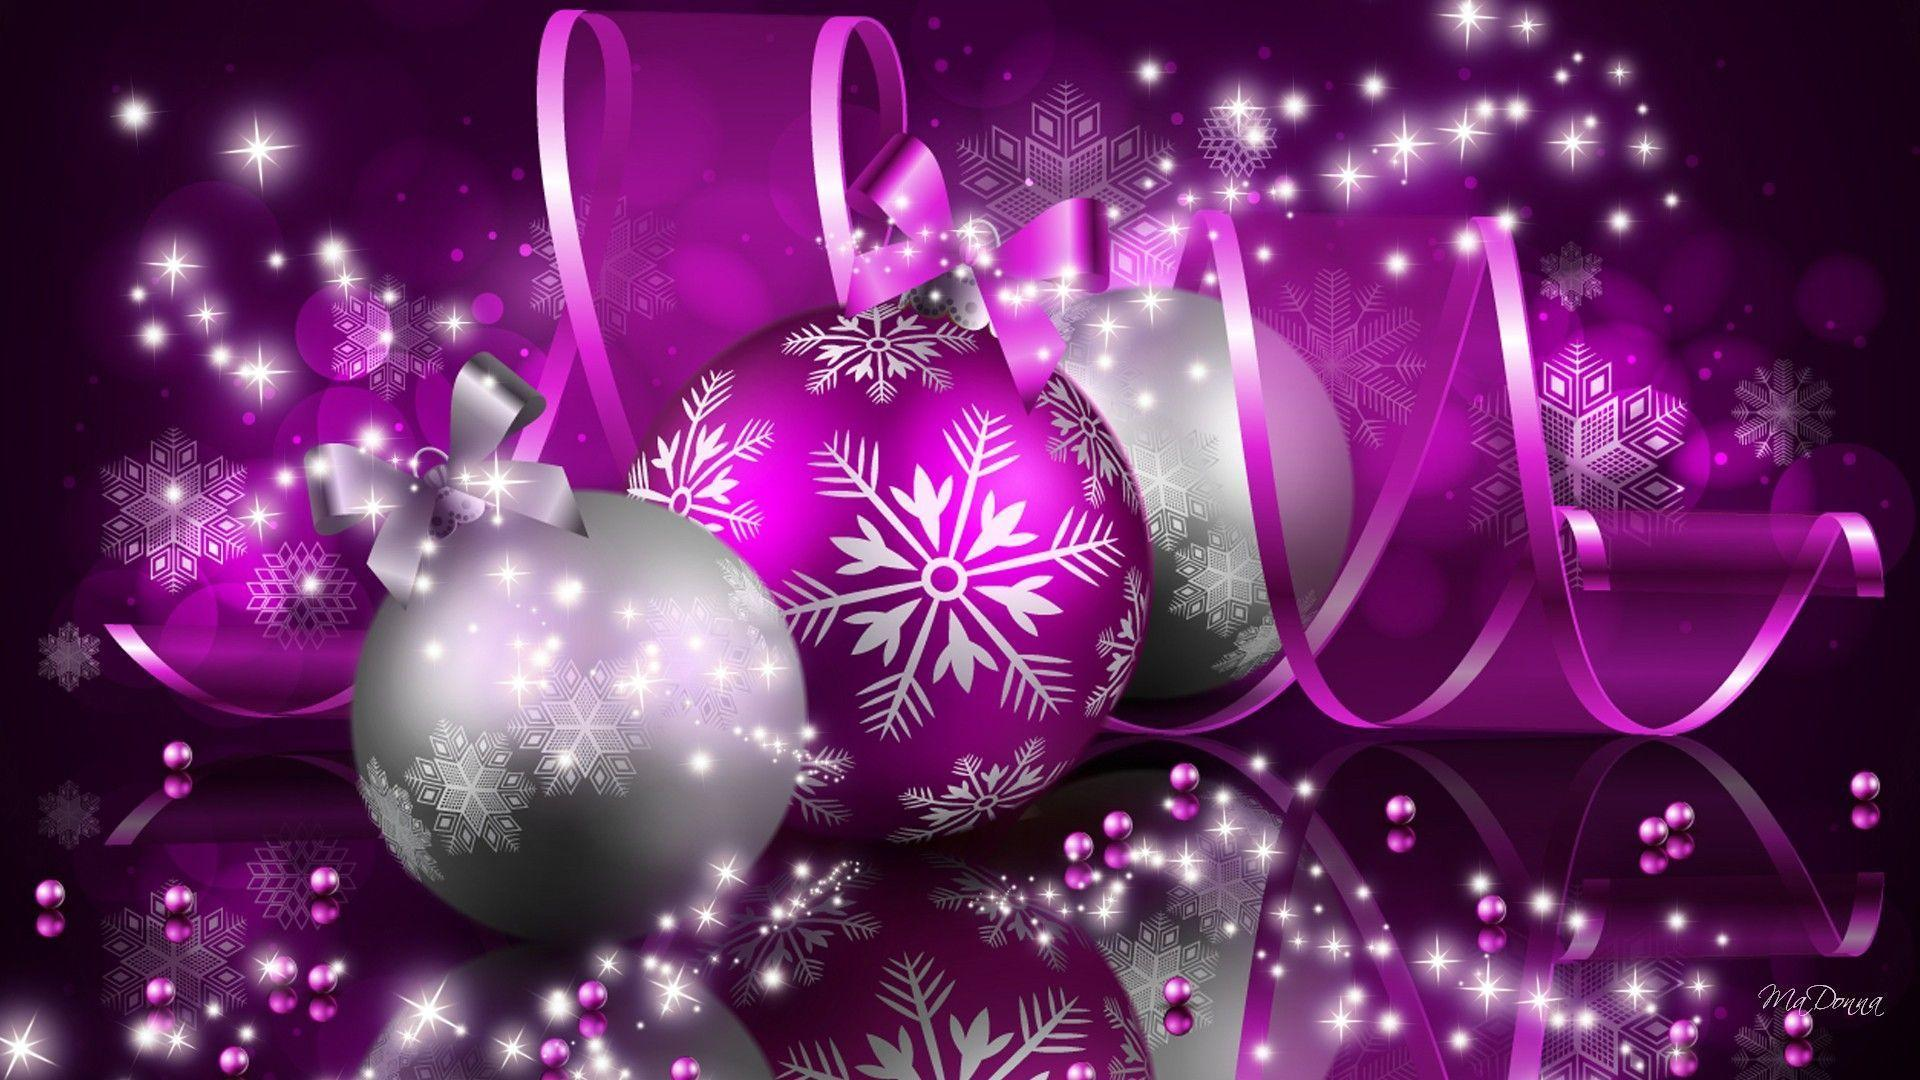 Wallpapers For > Purple Christmas Ornament Background